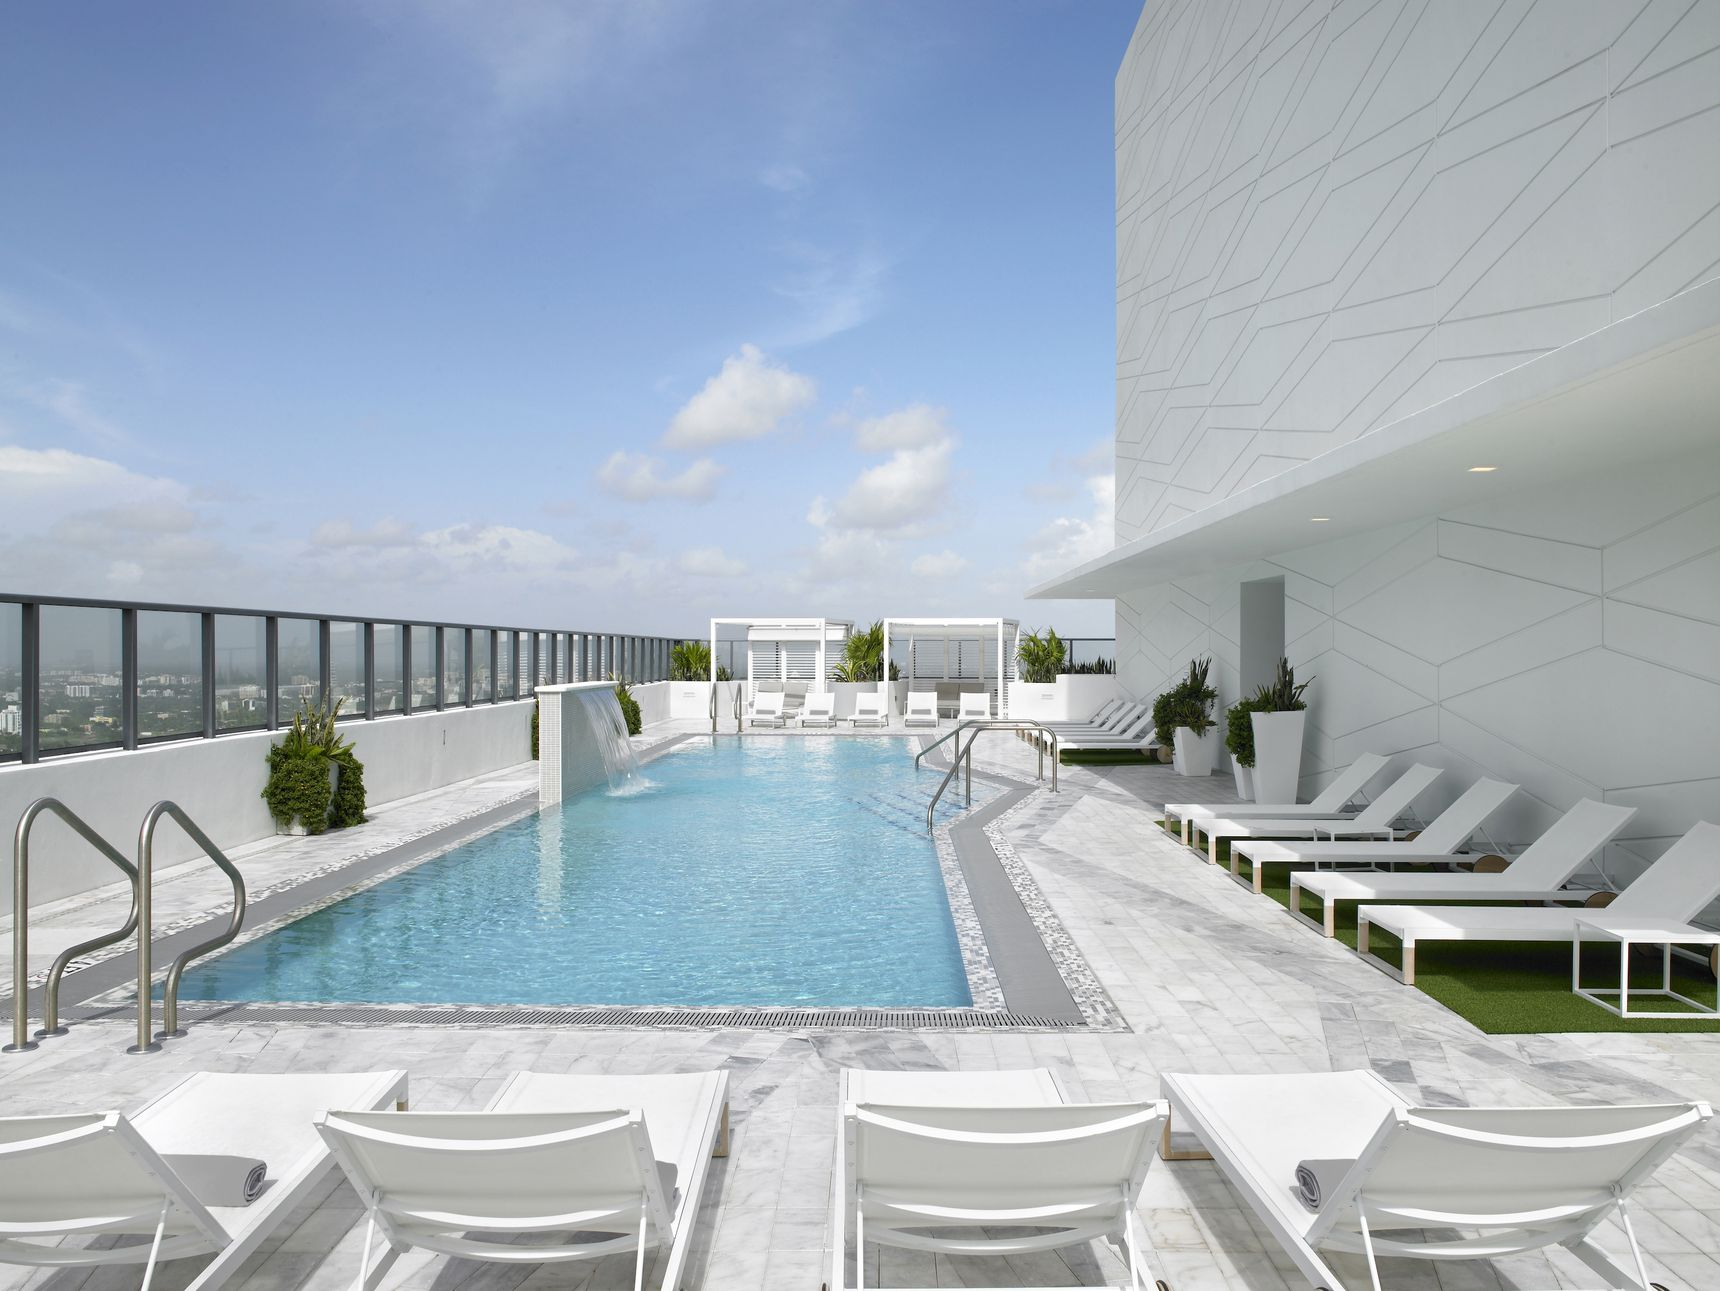 Check Out ZOM's Newly Opened Stantec-Designed Solitair In Brickell